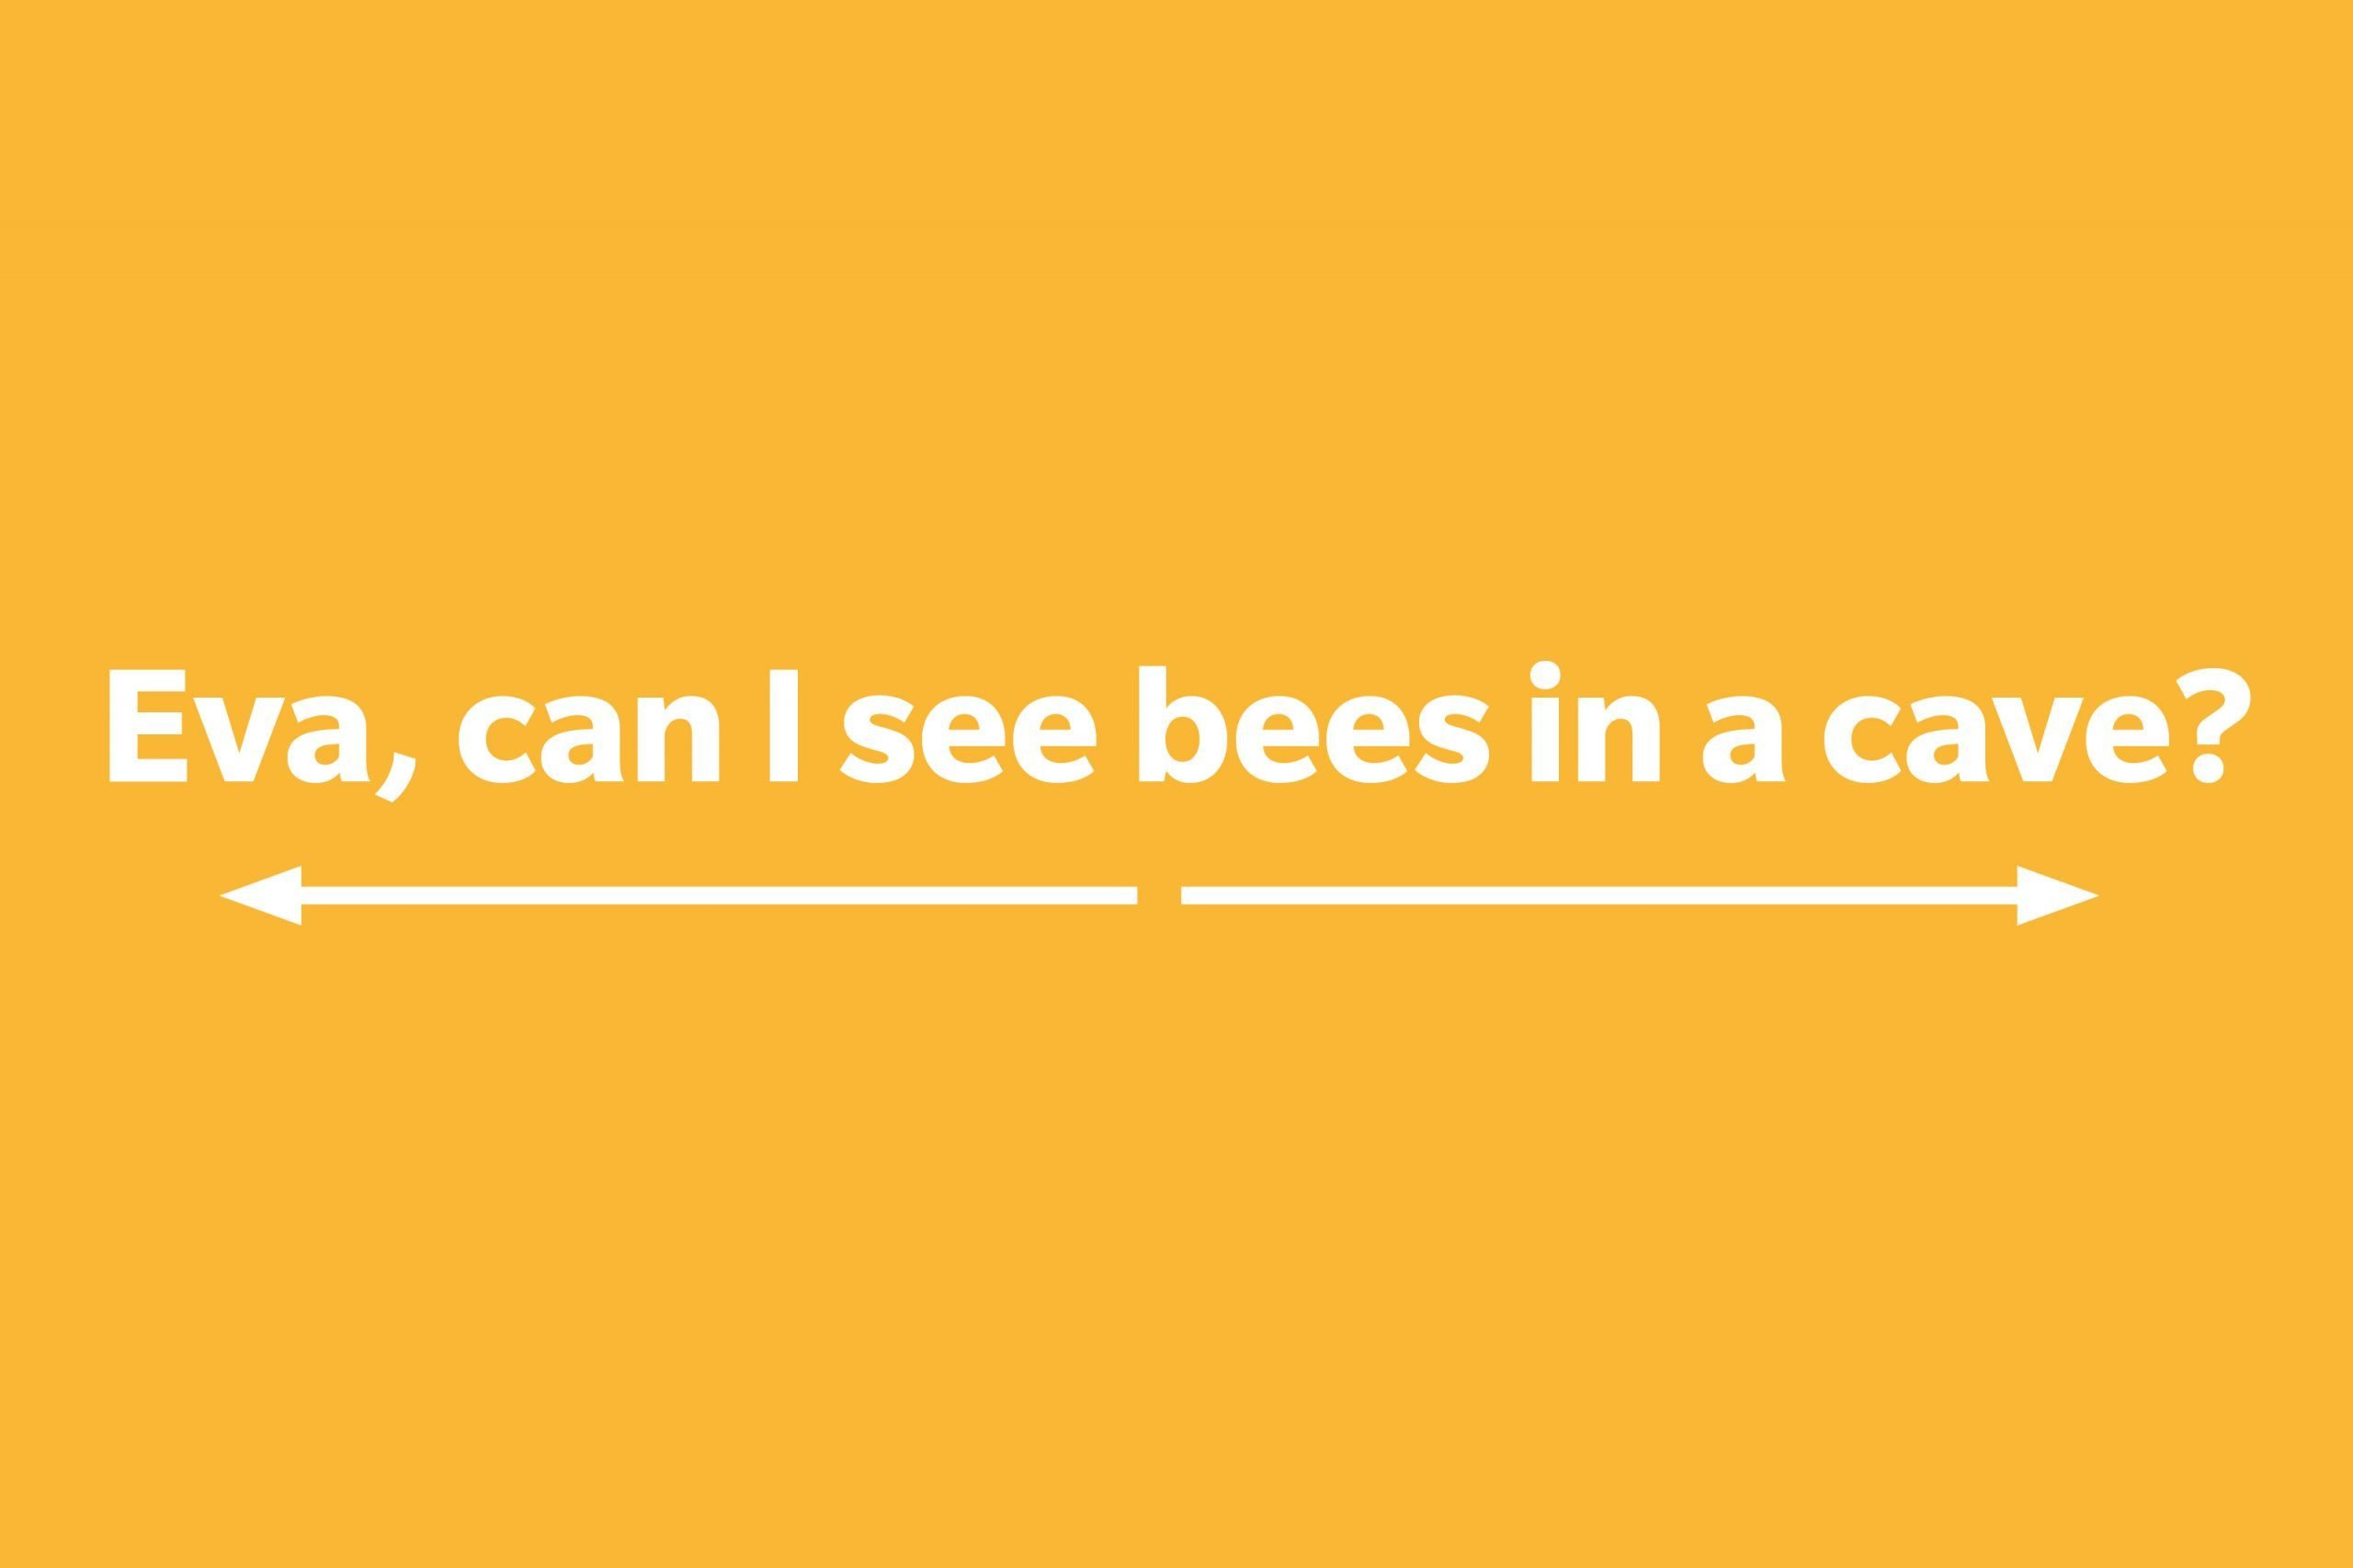 Eva, can I see bees in a cave?